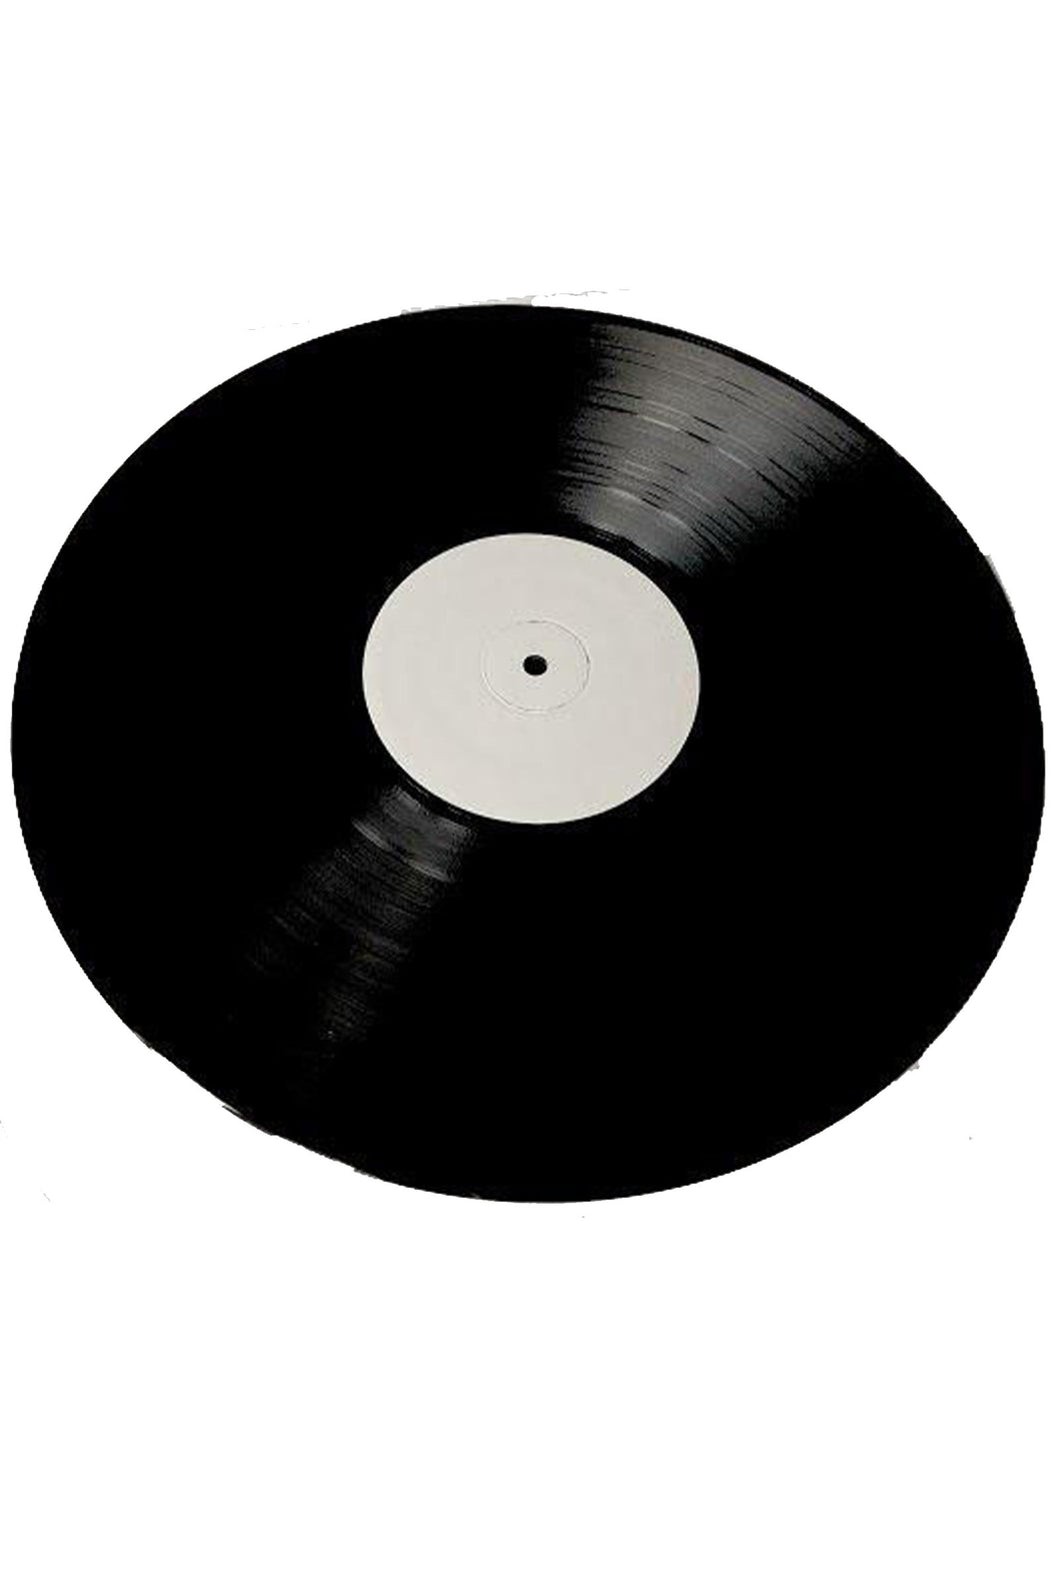 Test Pressing, My Resignation 12